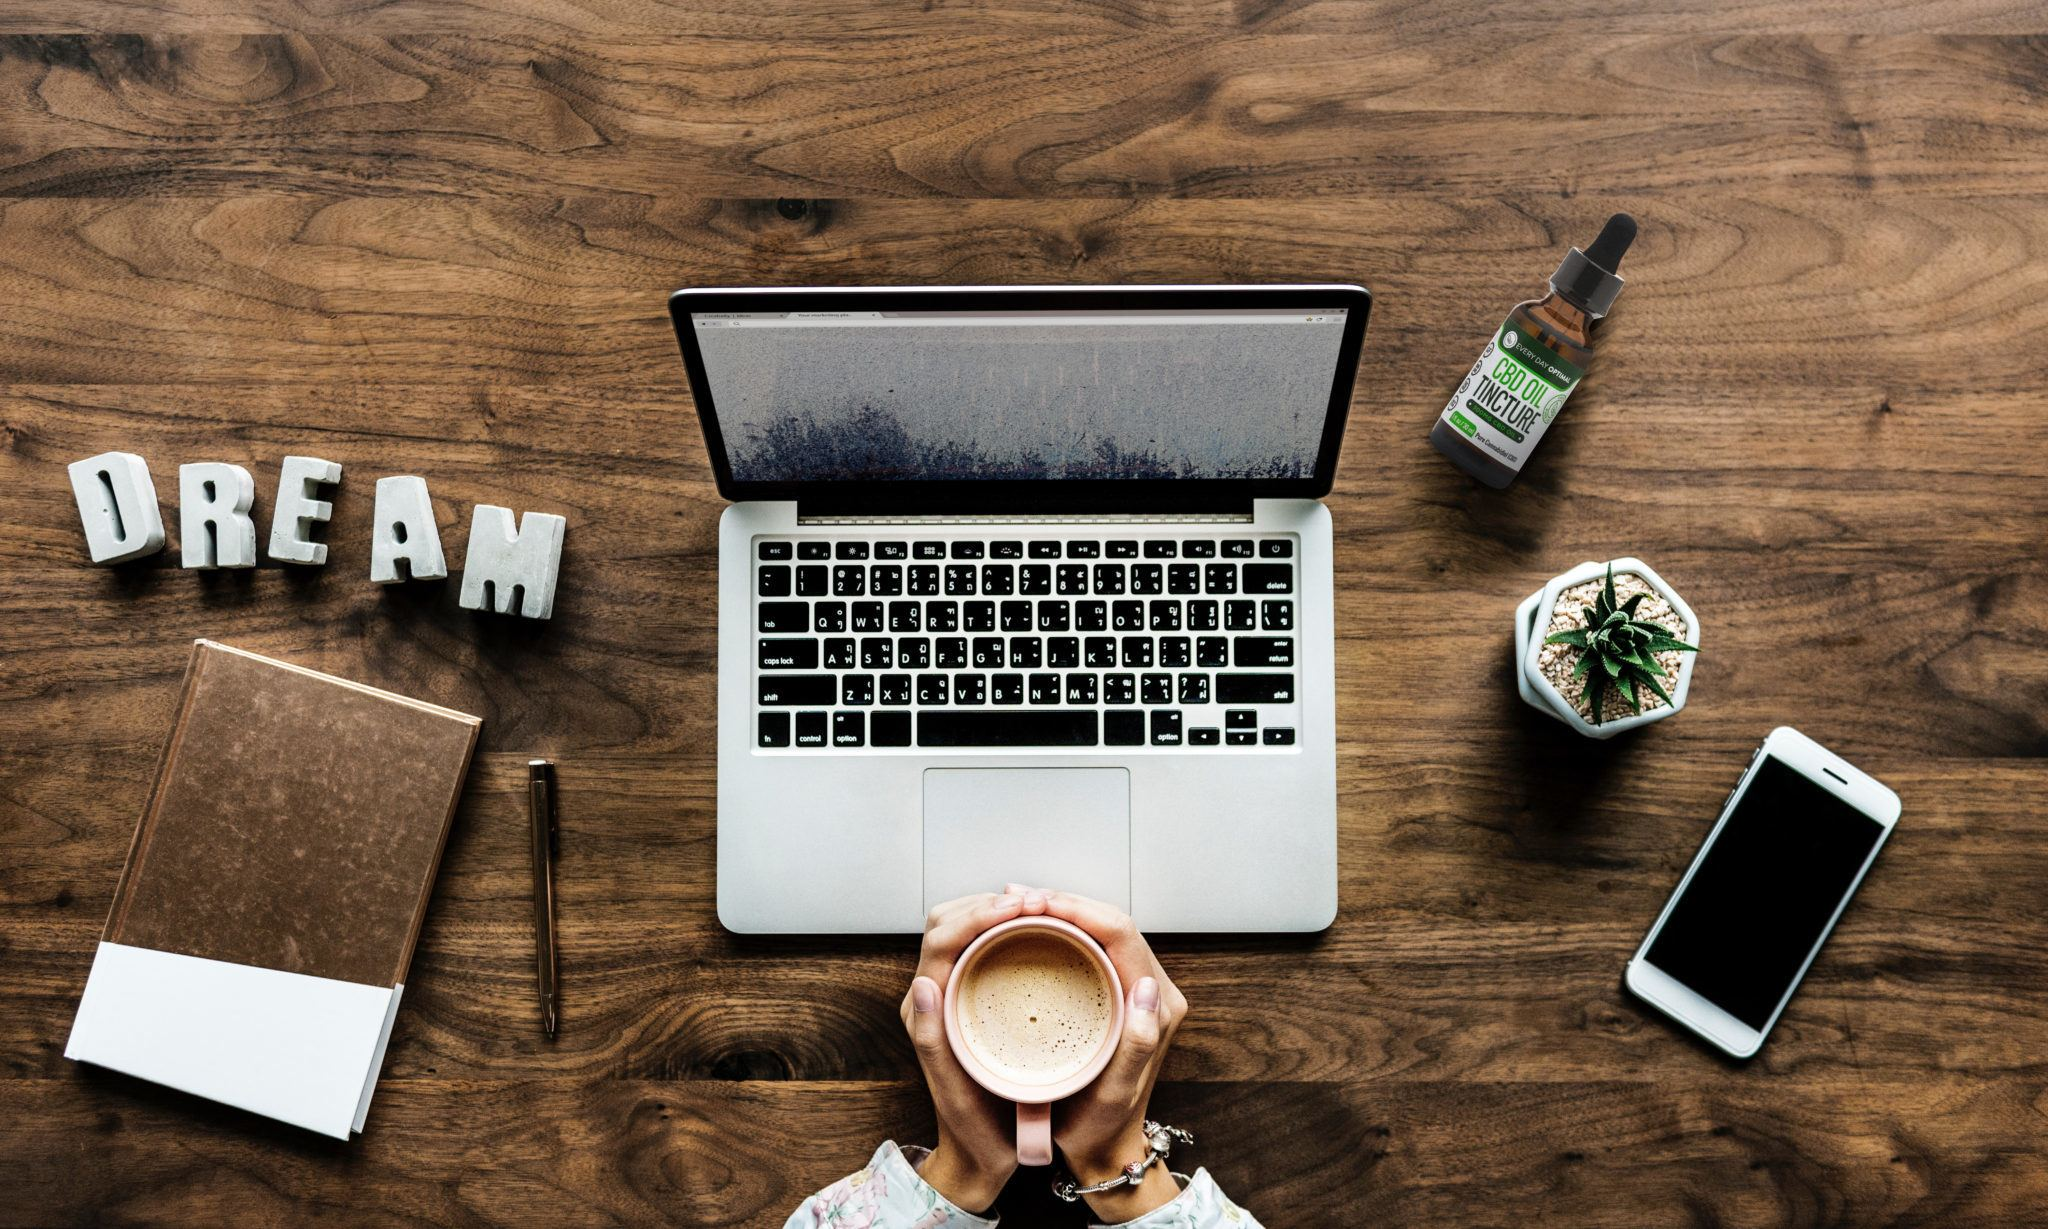 In this article, we compare the benefits of CBD vs. CBN and explain how both can help us live better lives. A seated person cups a mug of coffee in their hands in front of a laptop. Arranged nearby are a small plant, a notepad, a smartphone, a bottle of Every Day Optimal CBD, and decorate letters spelling the word DREAM.